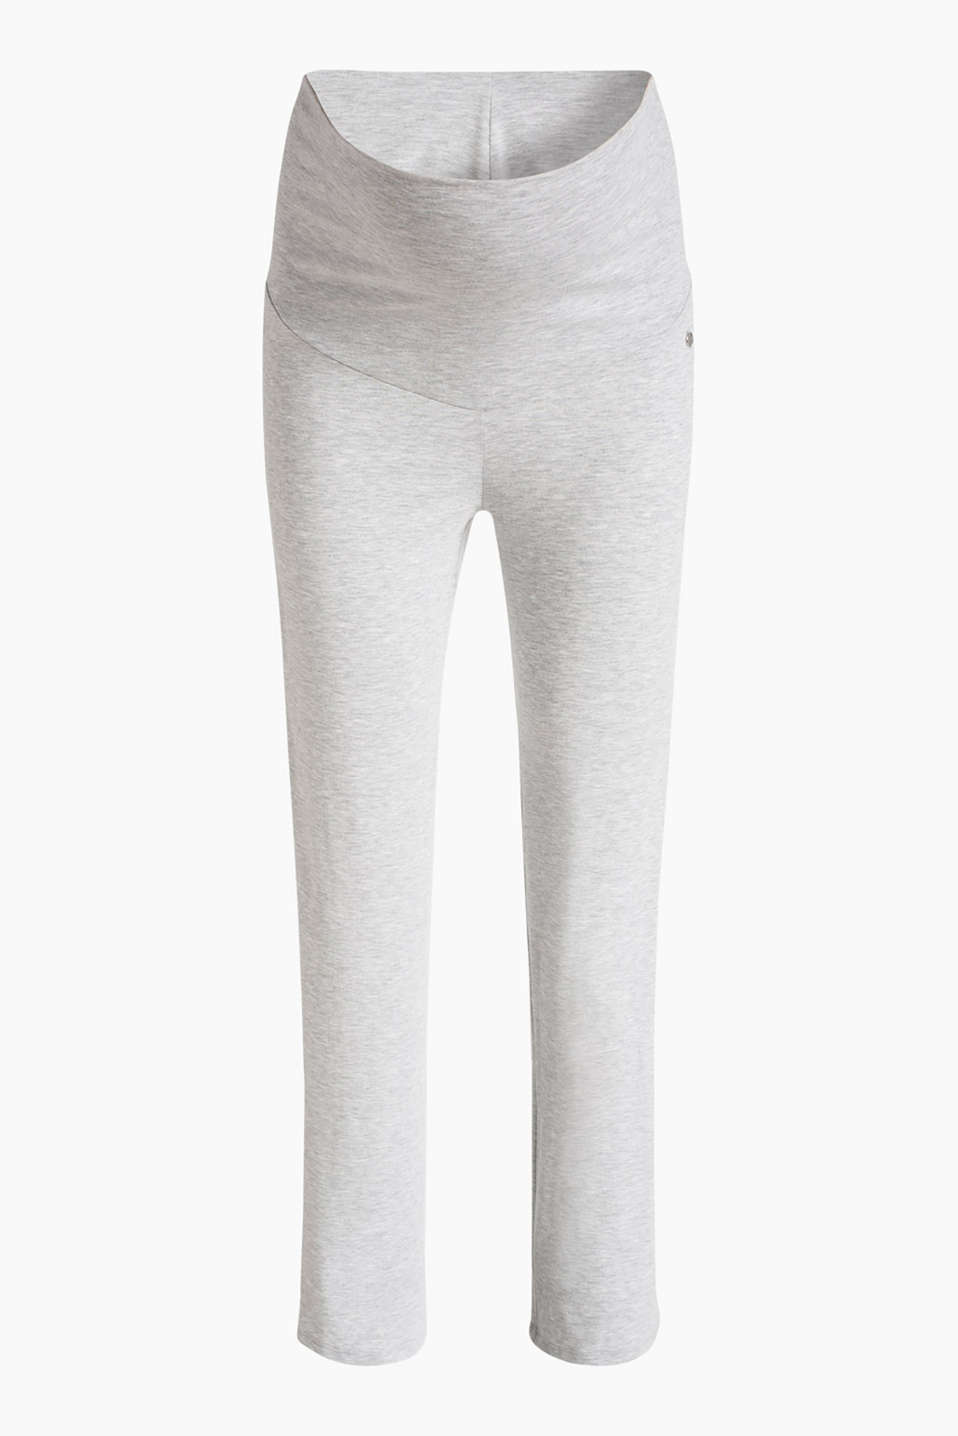 Esprit - Stretch jersey trousers + above-bump waist